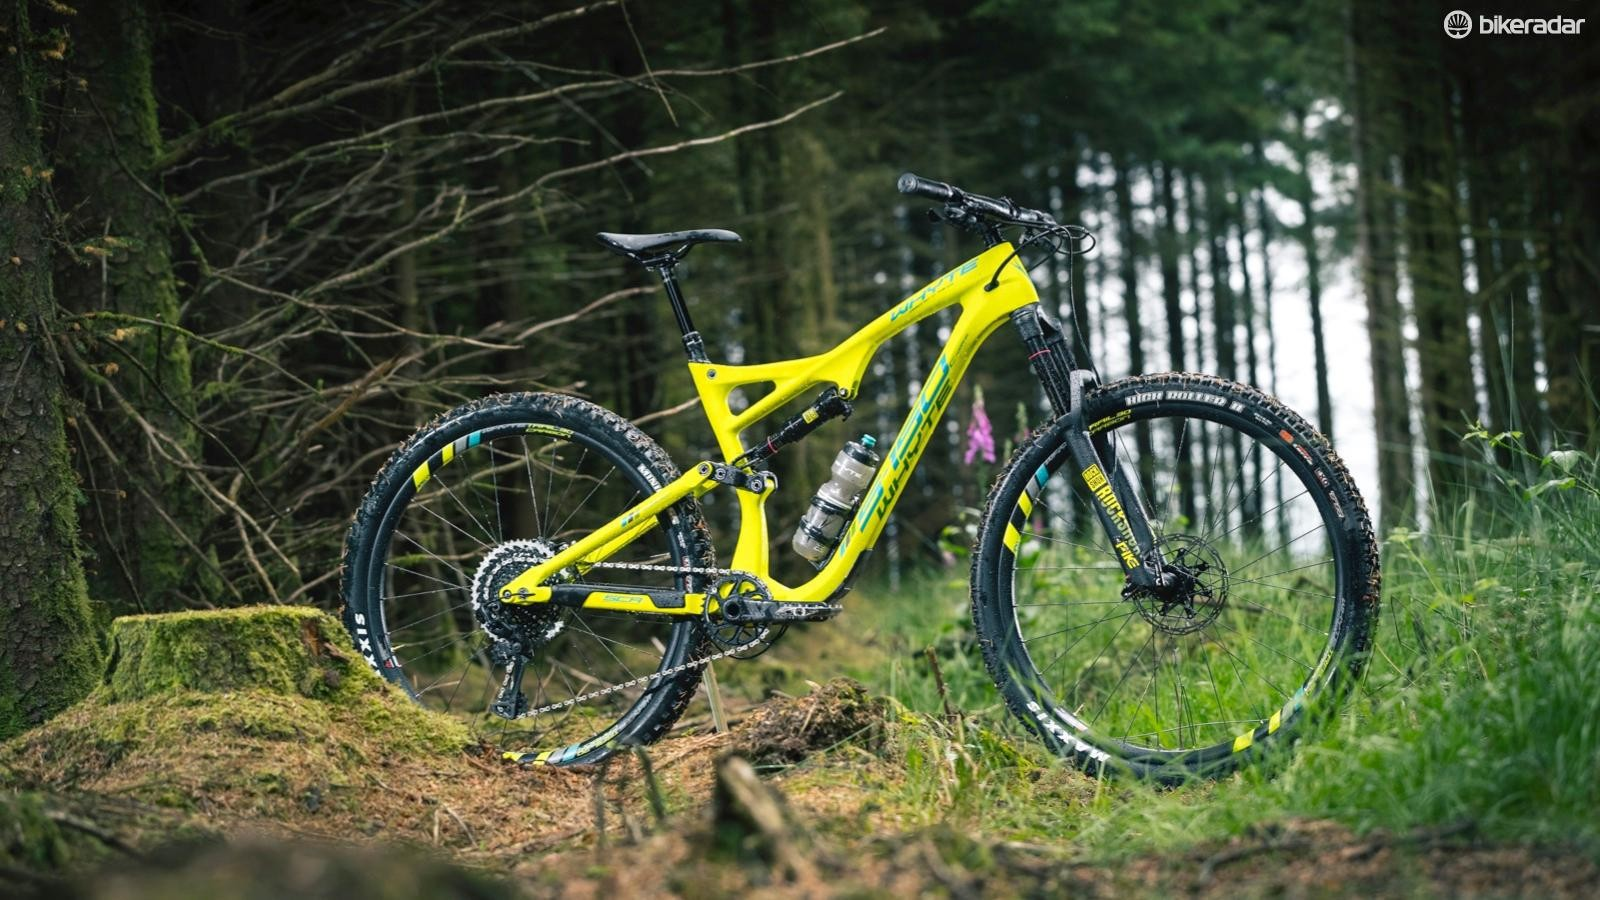 If you're after an agile yet super capable trail bike, Whyte's S-150 is hard to beat